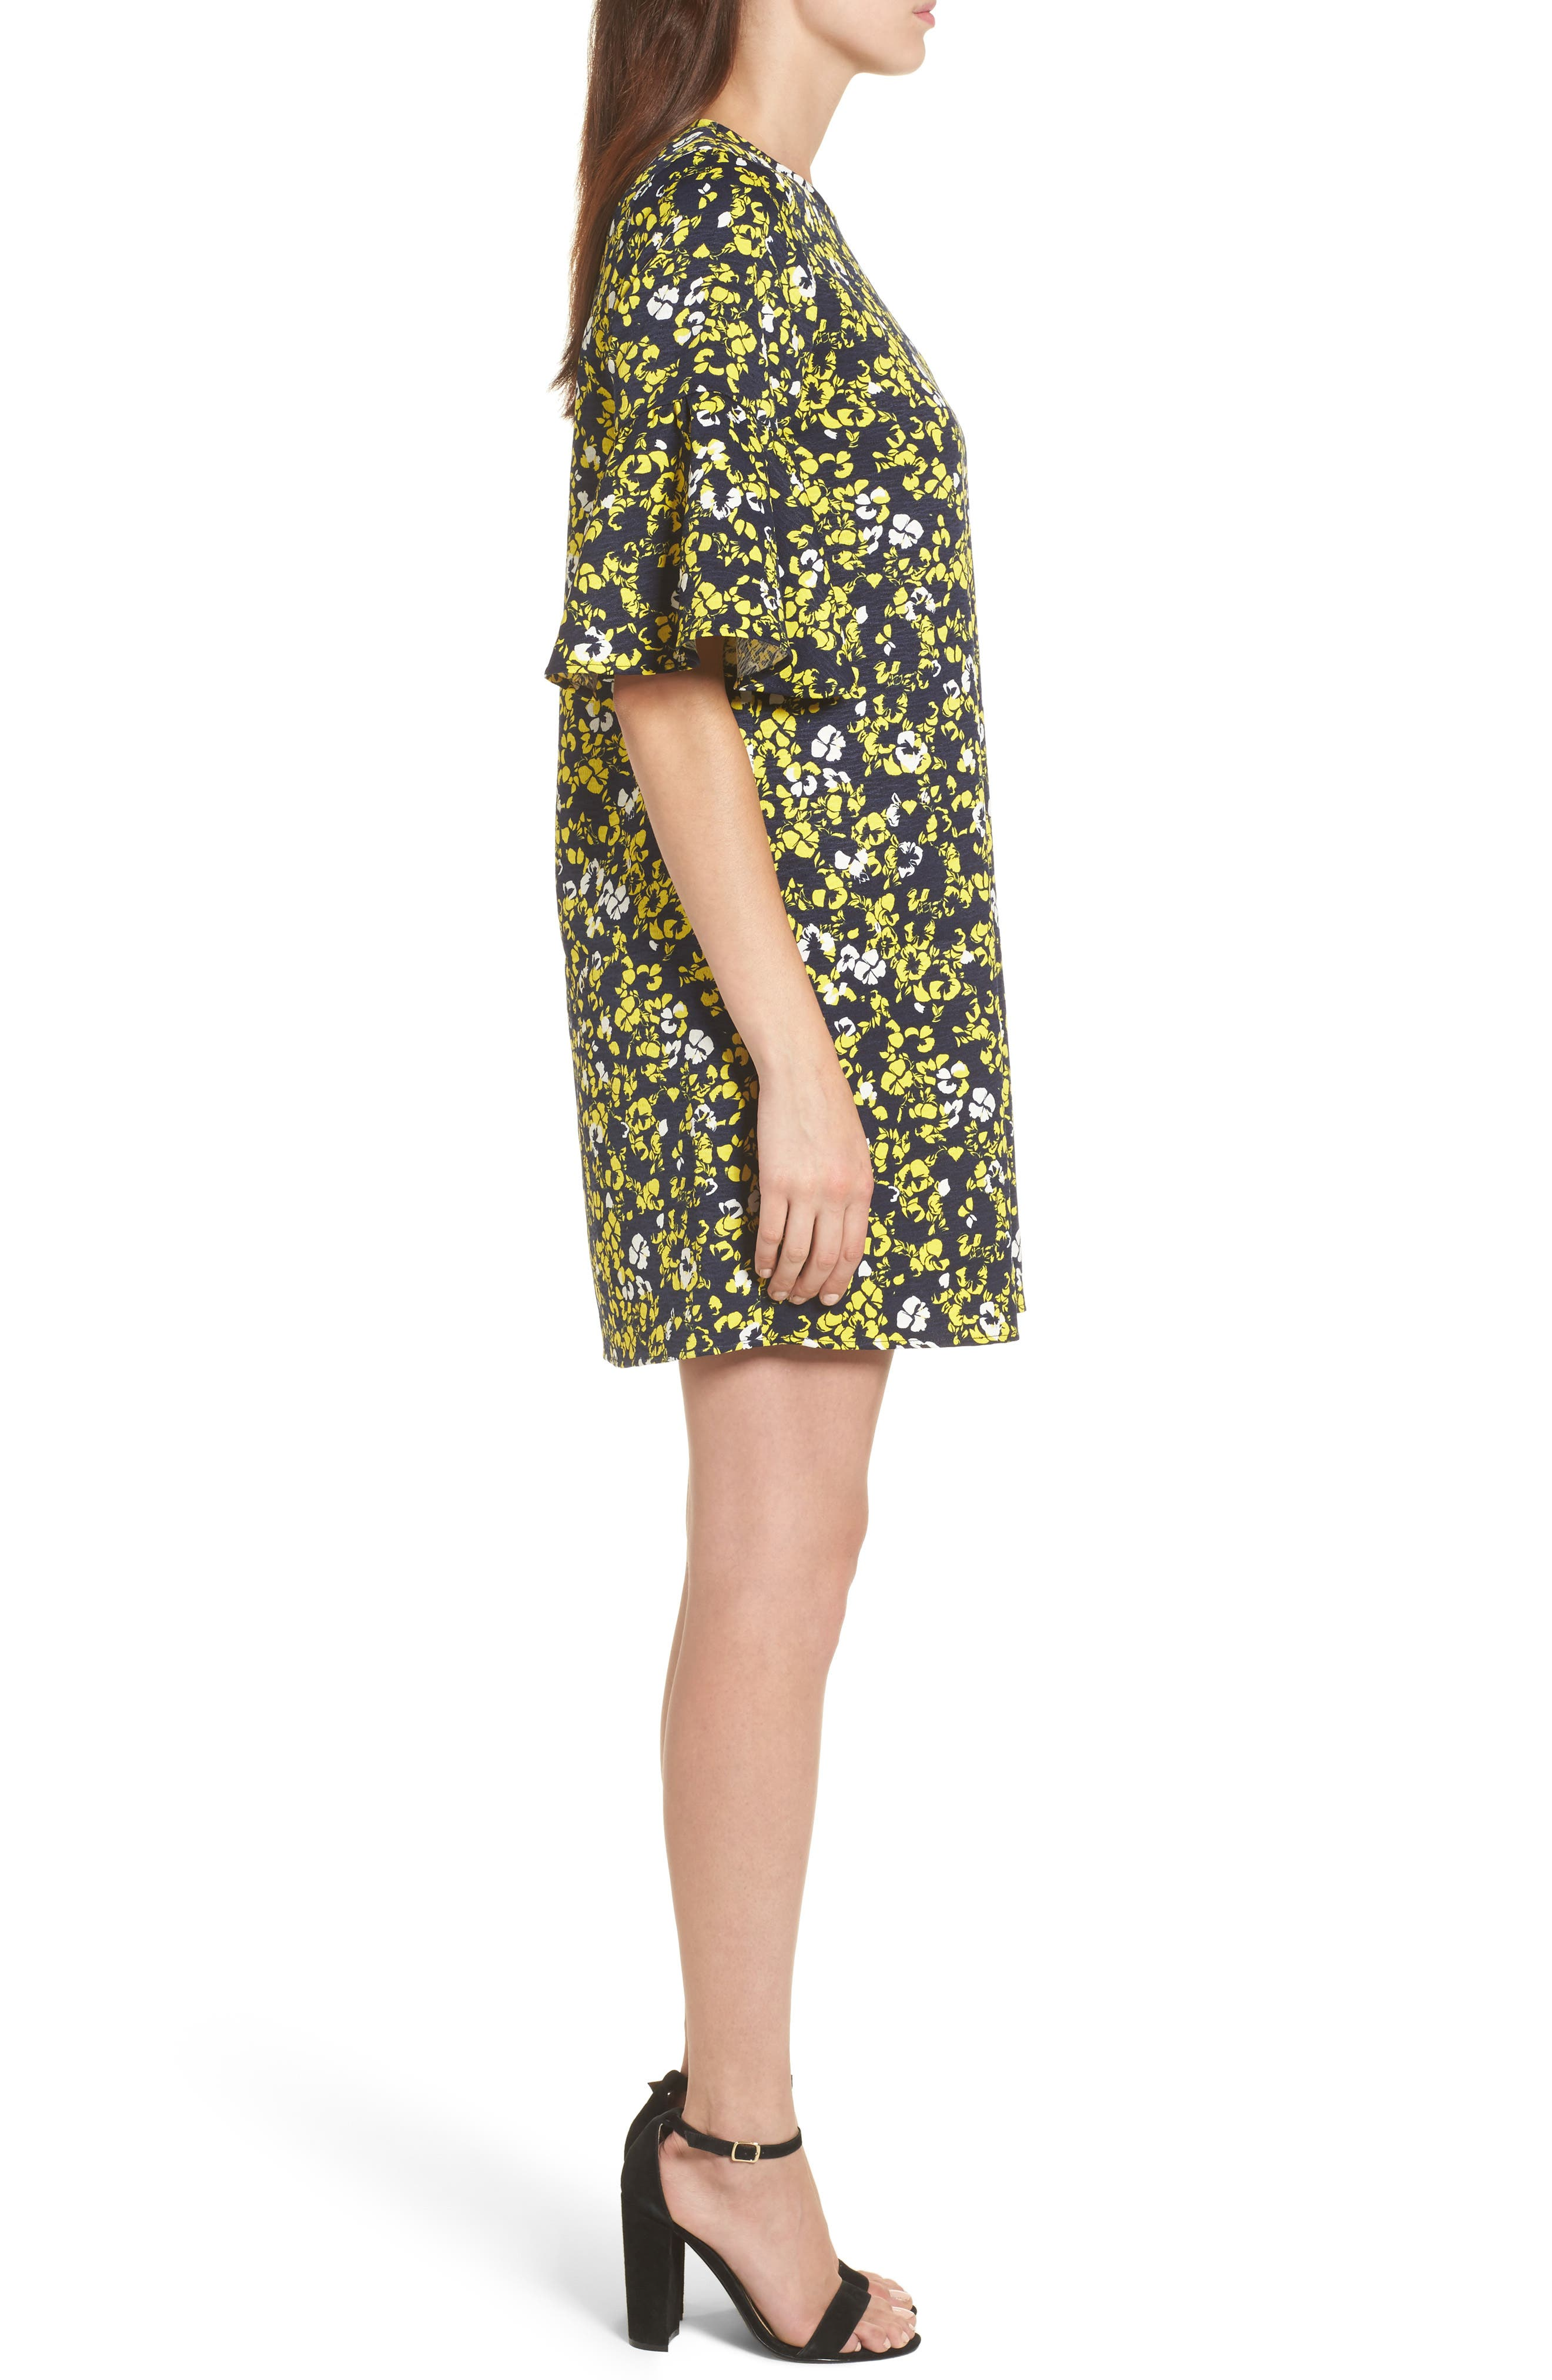 Ruffle Sleeve Shift Dress,                             Alternate thumbnail 3, color,                             Navy- Yellow Floral